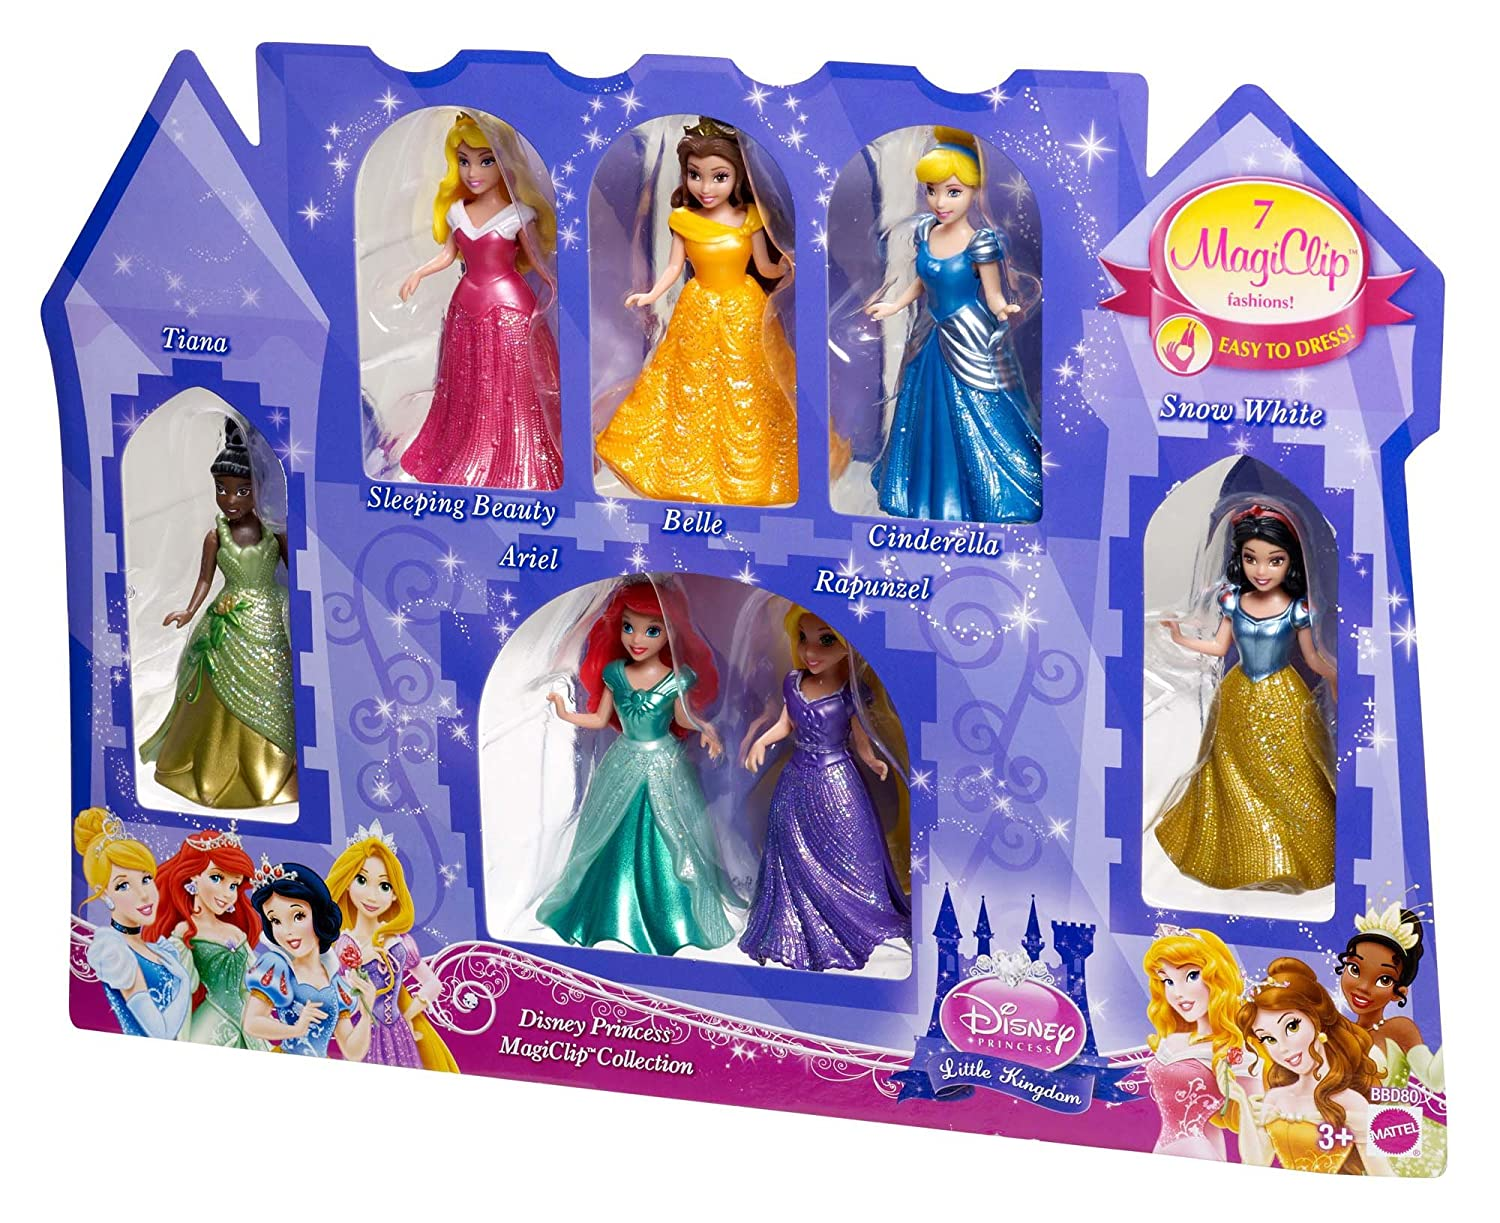 amazoncom disney princess little kingdom magiclip 7 doll giftset discontinued by manufacturer toys games - Disney Princess Art And Activity Collection